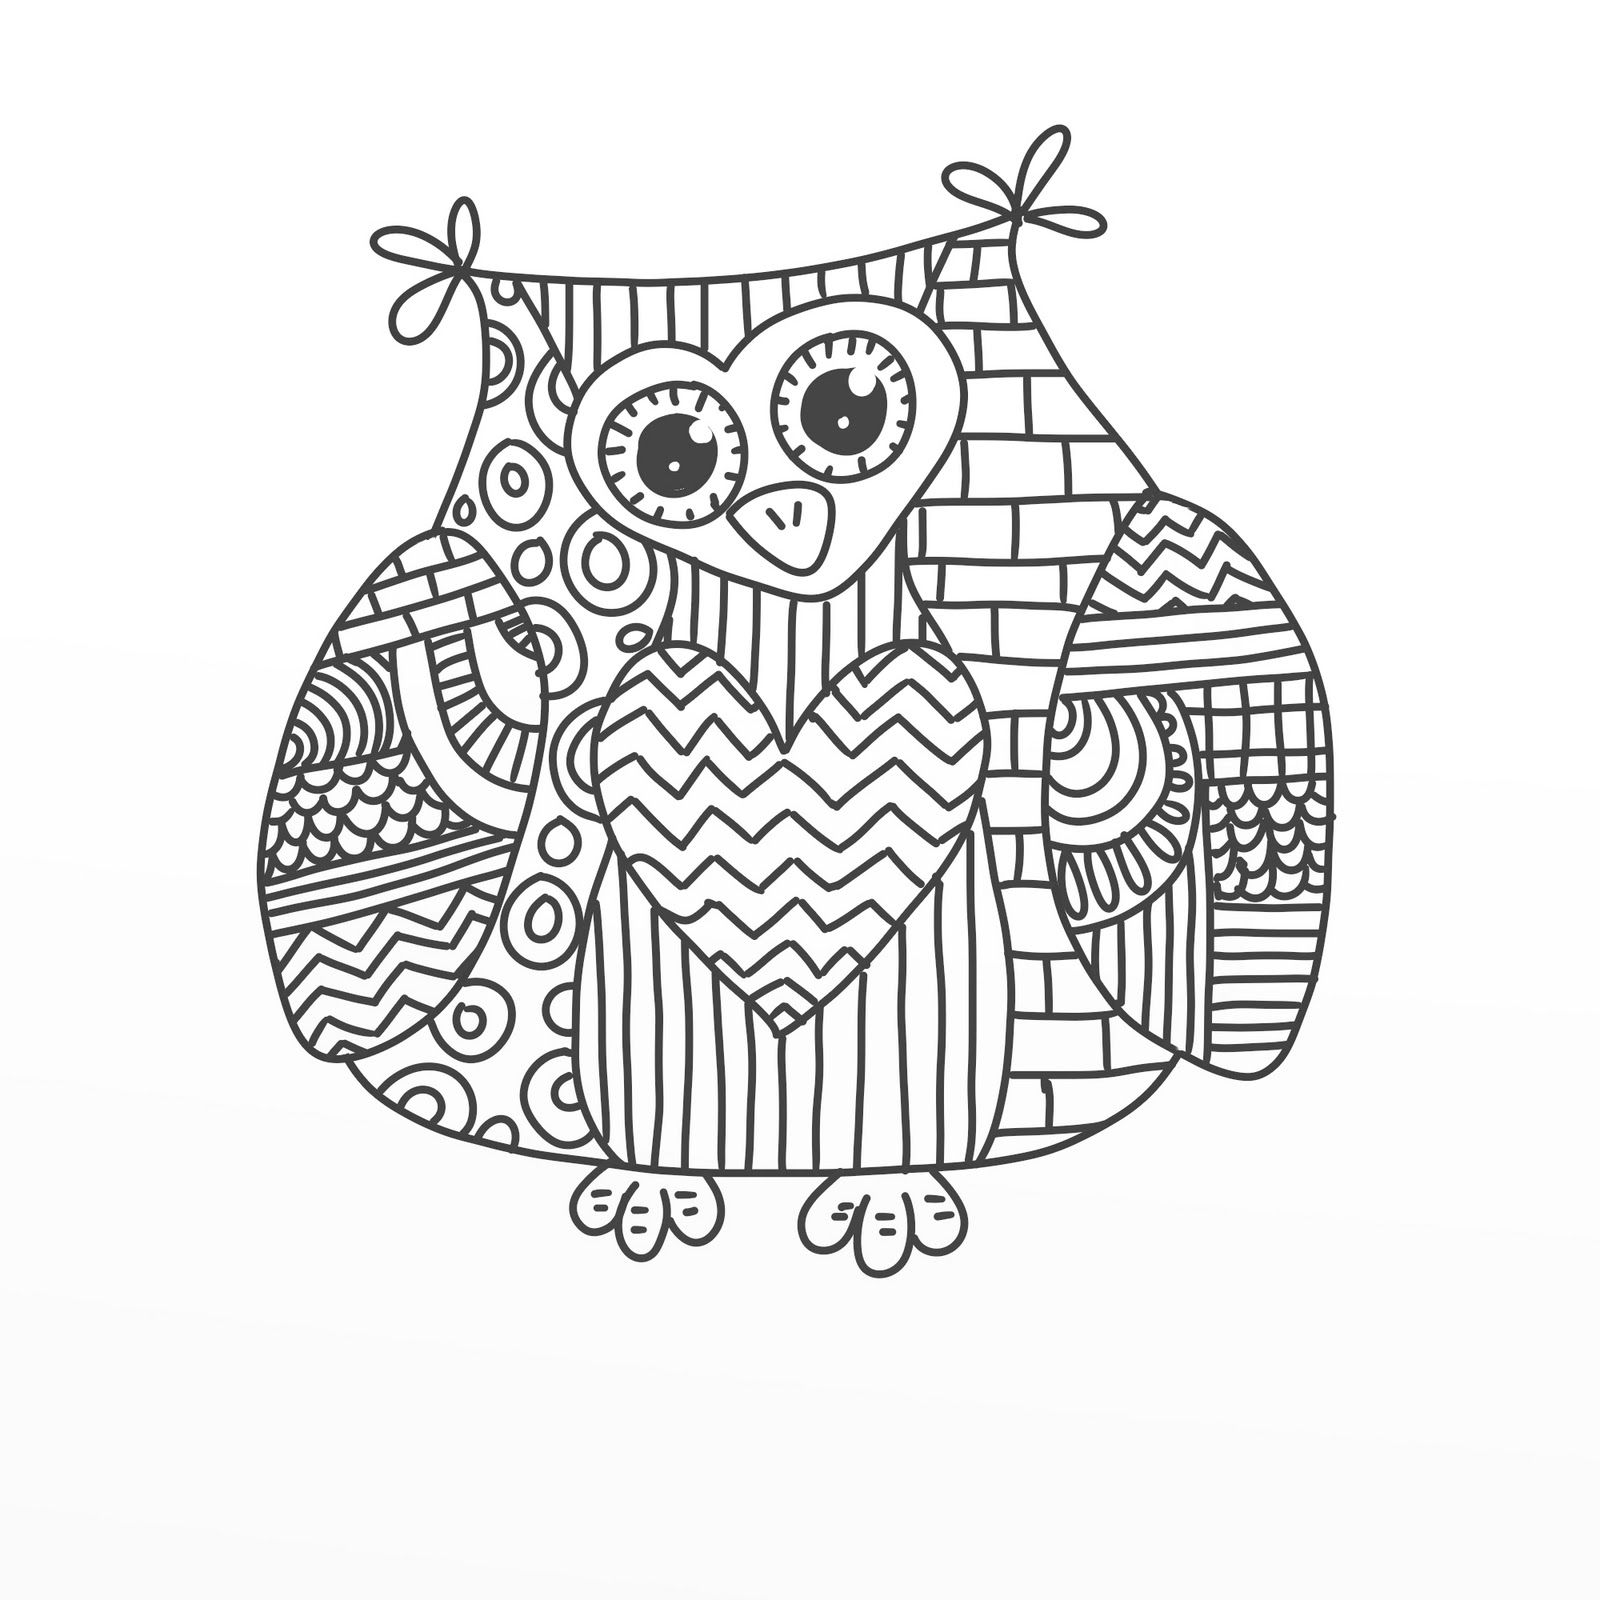 Adult Best Free Printable Doodle Art Coloring Pages Gallery Images best free doodle art coloring pages az abstract pictures colorine gallery images